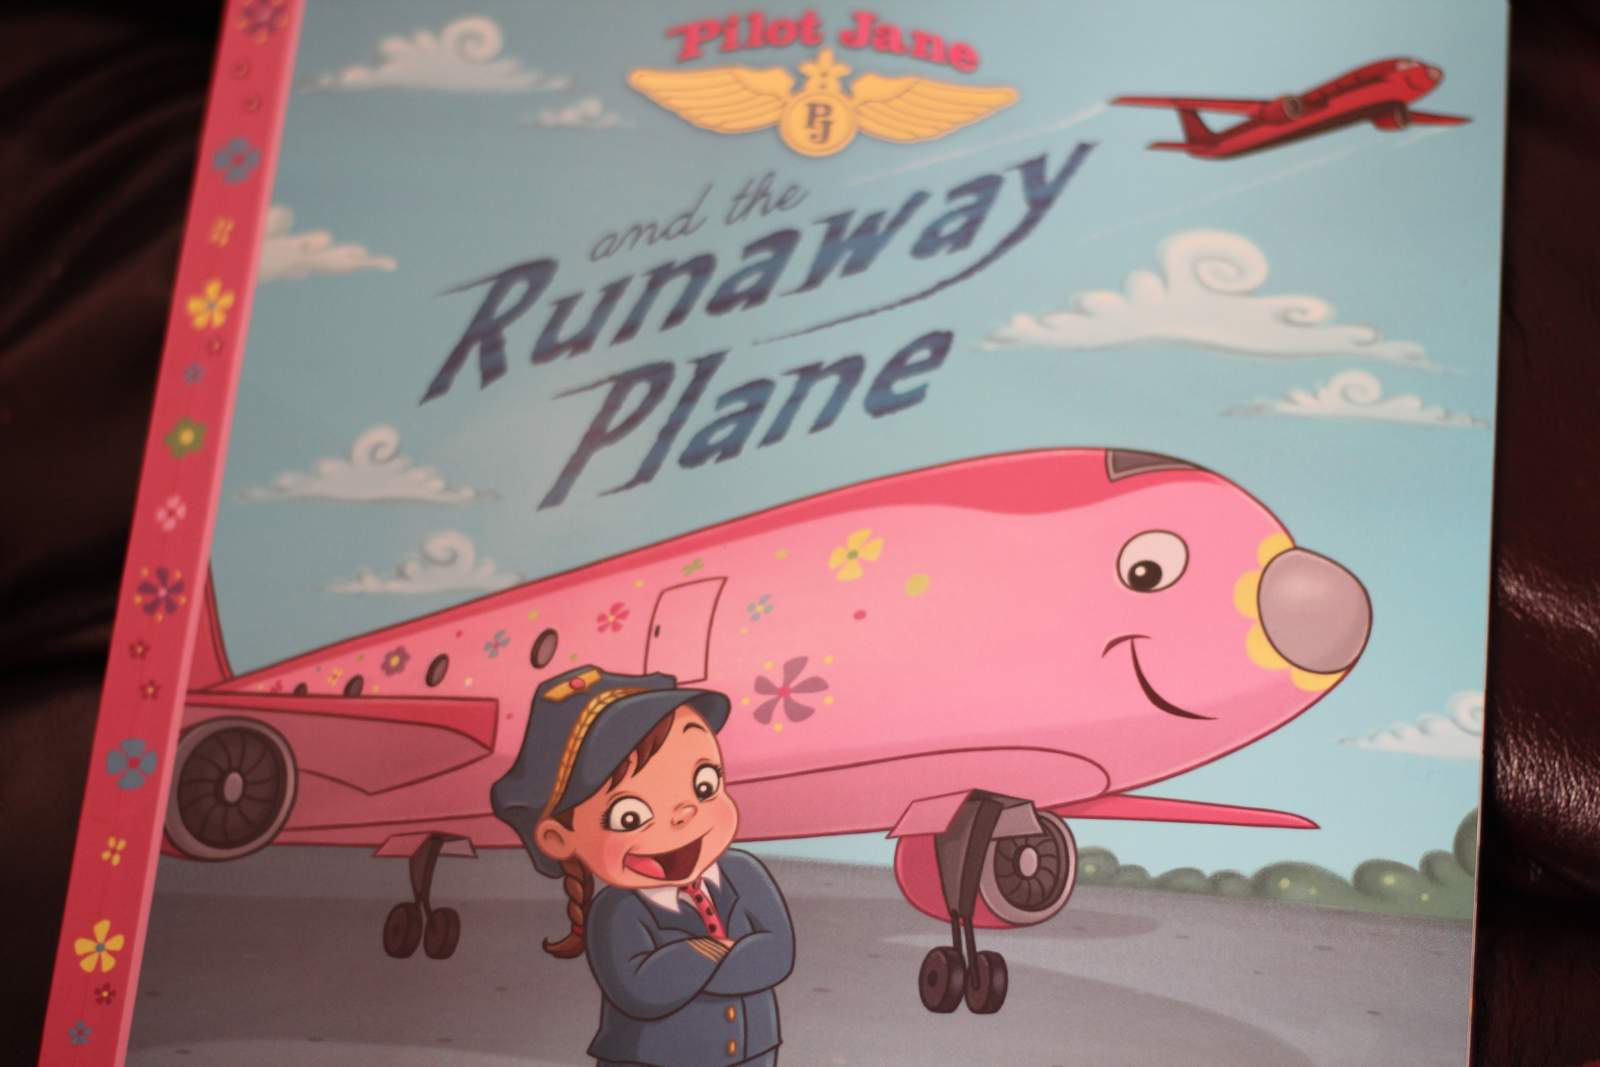 Pilot Jane and the Runaway Plane – book review